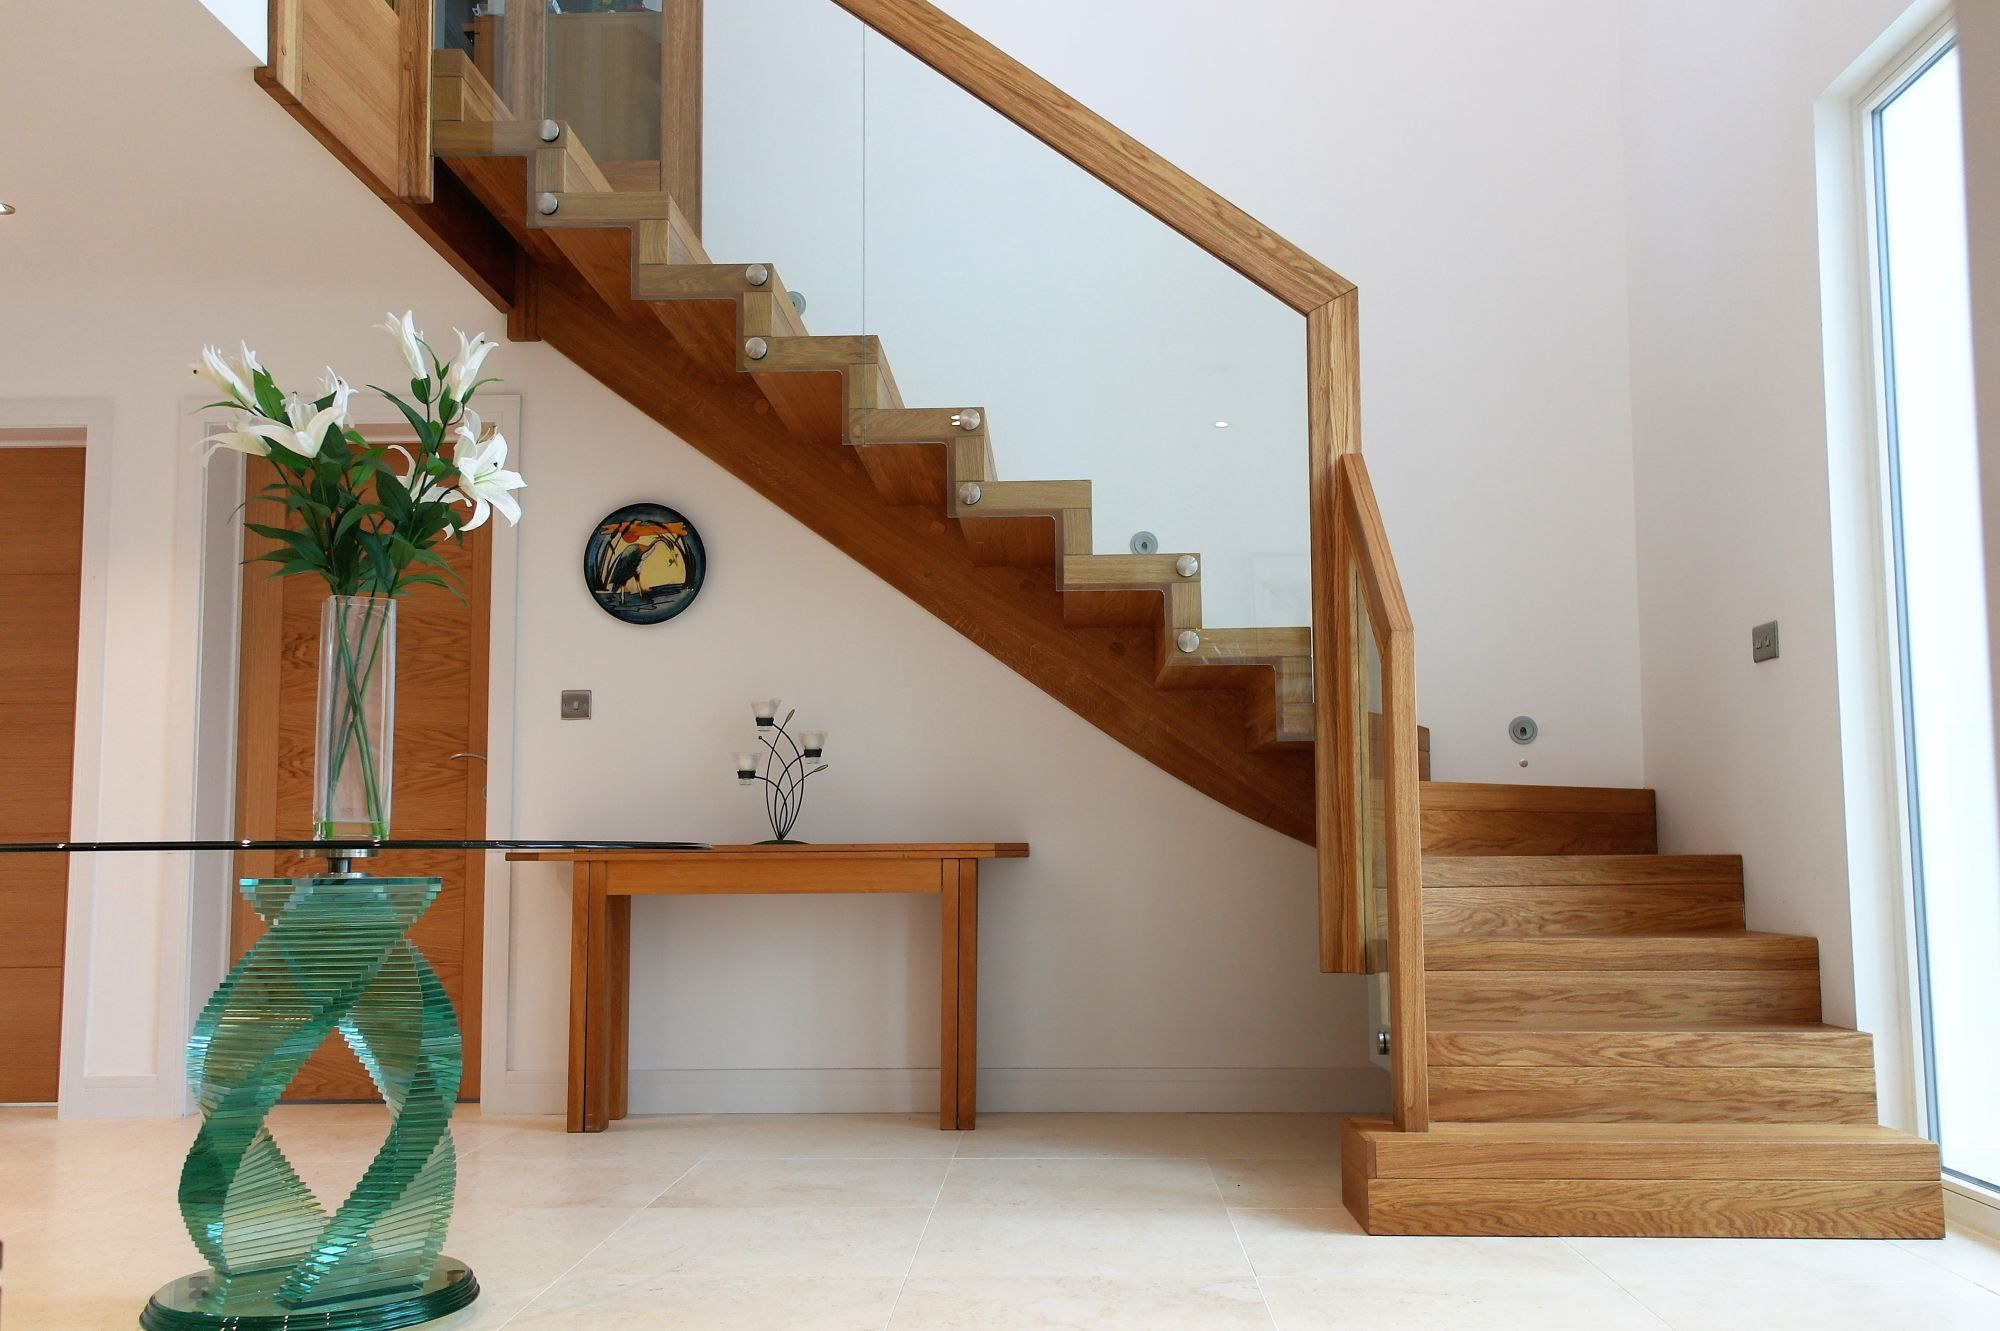 An Oak wooden staircase with glass by WoodenStairs with flowers